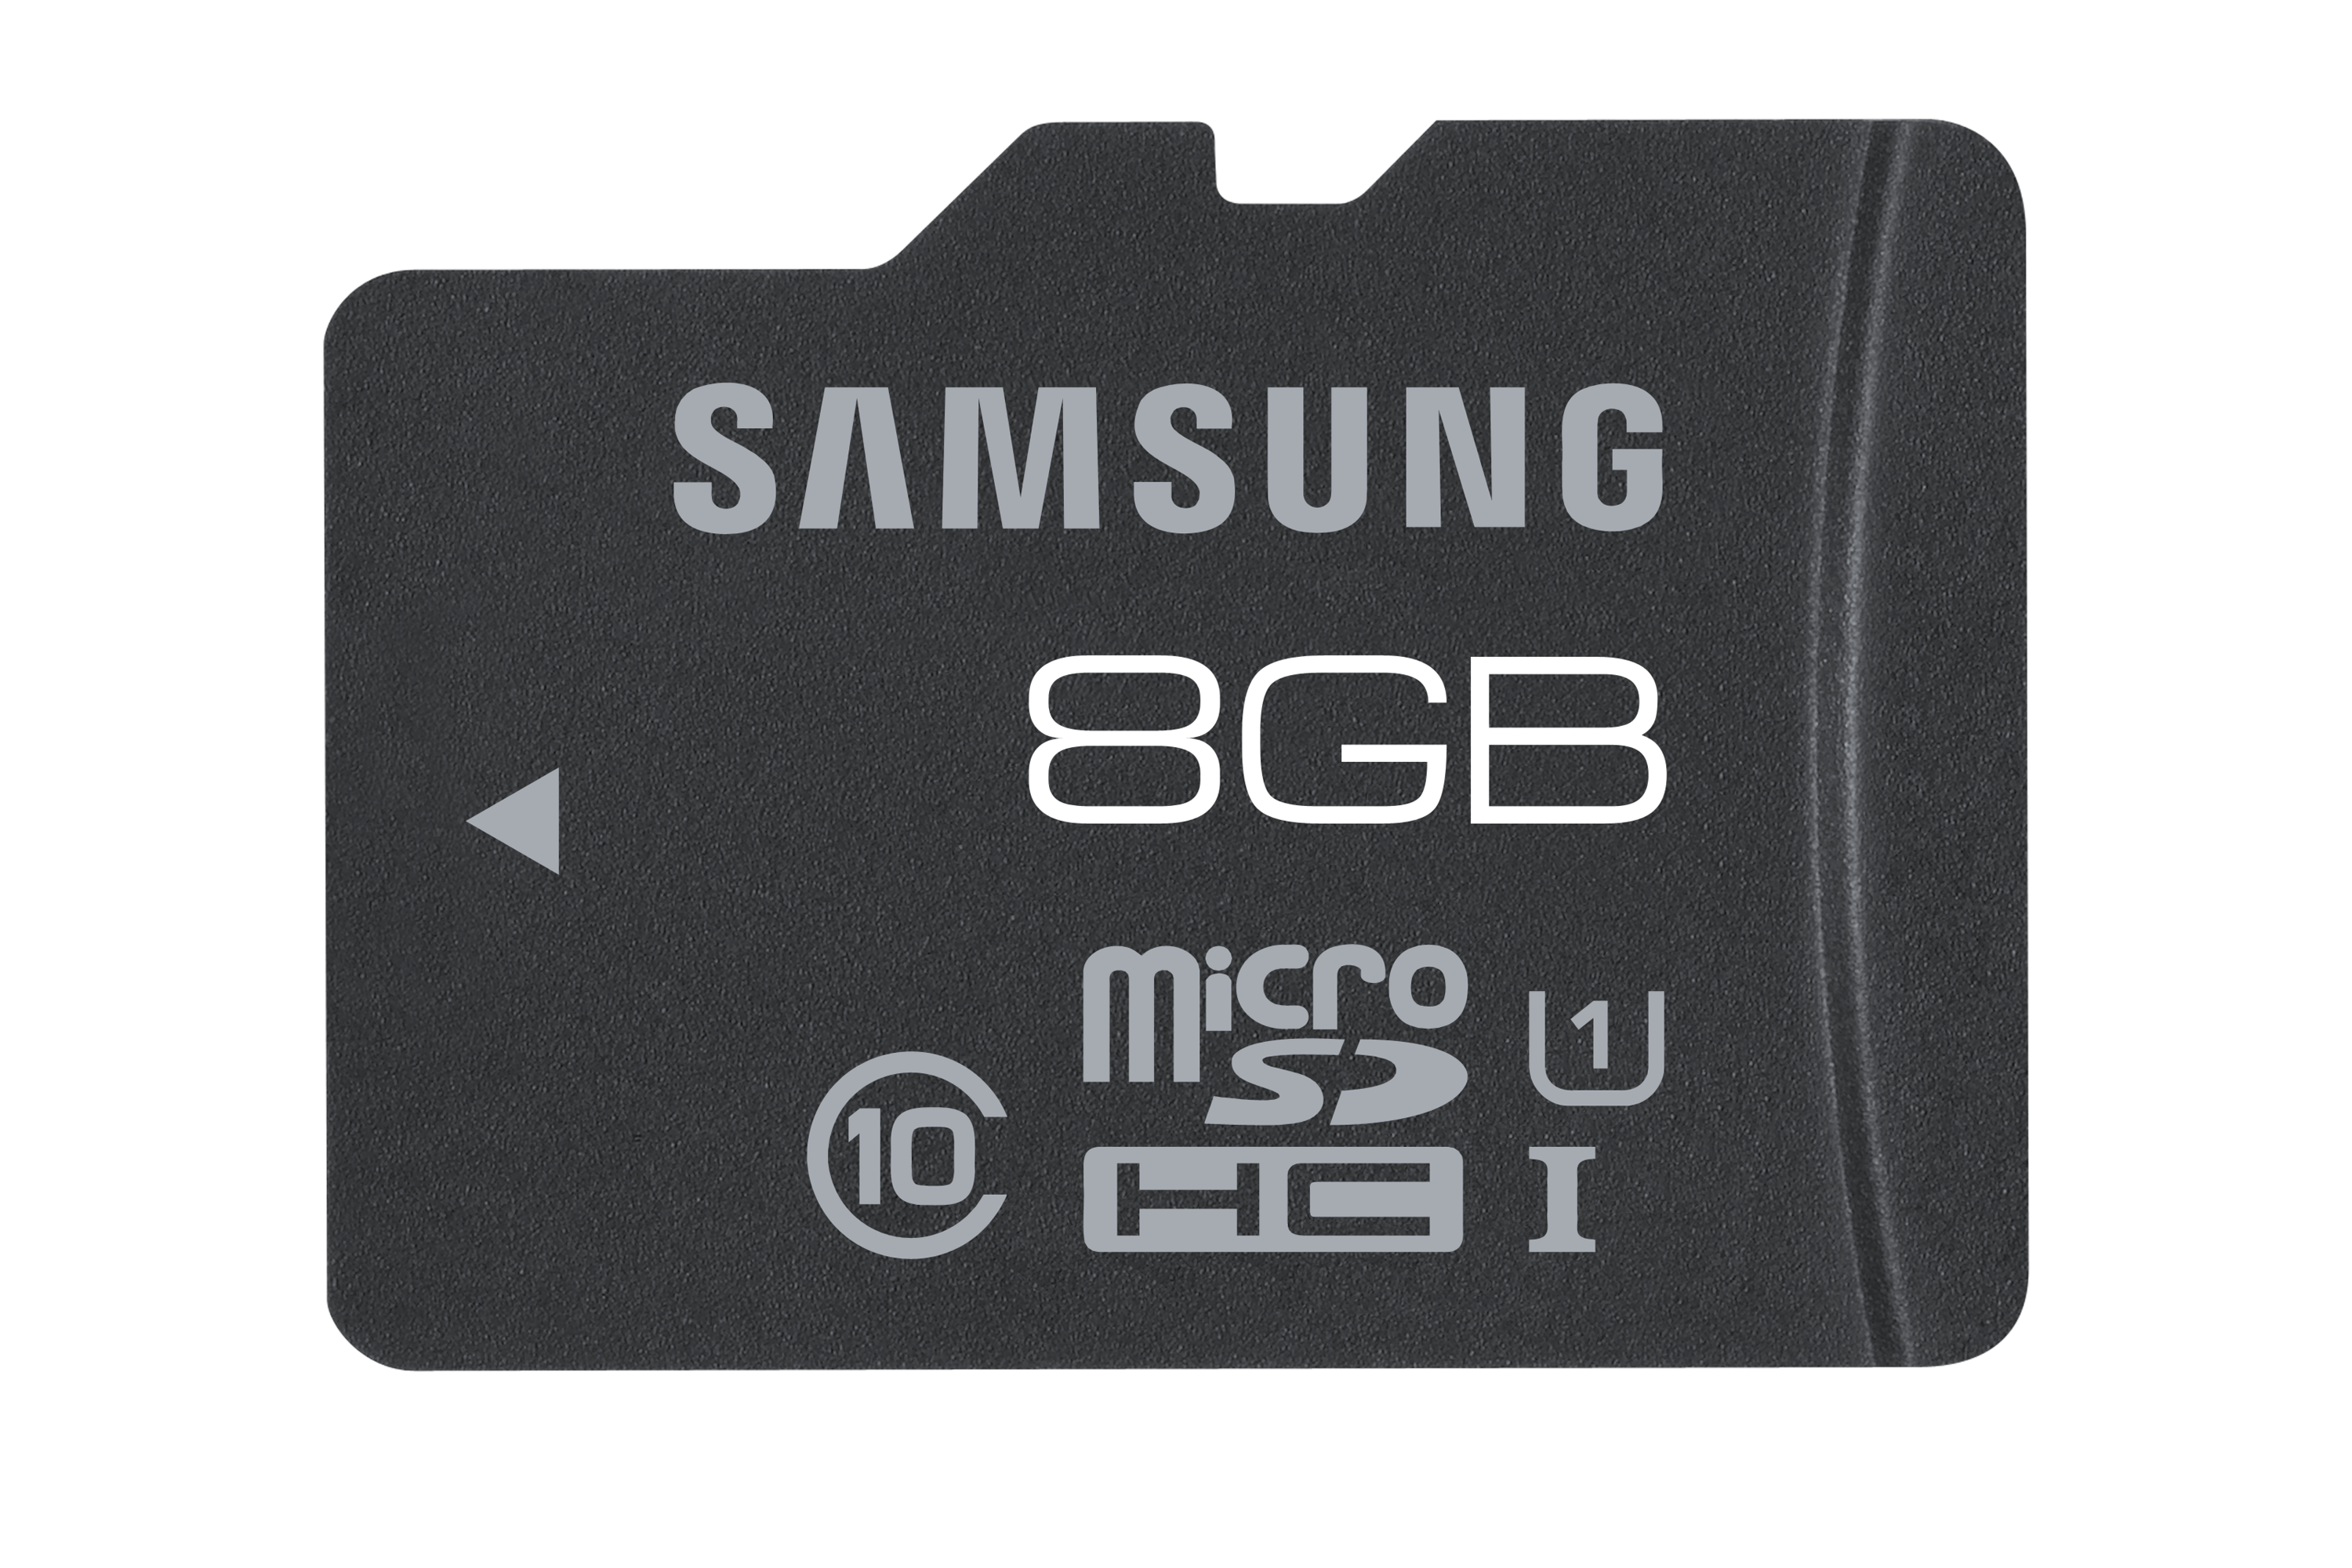 8GB MicroSDHC Pro (Smartphone, Tablet) Memory Card